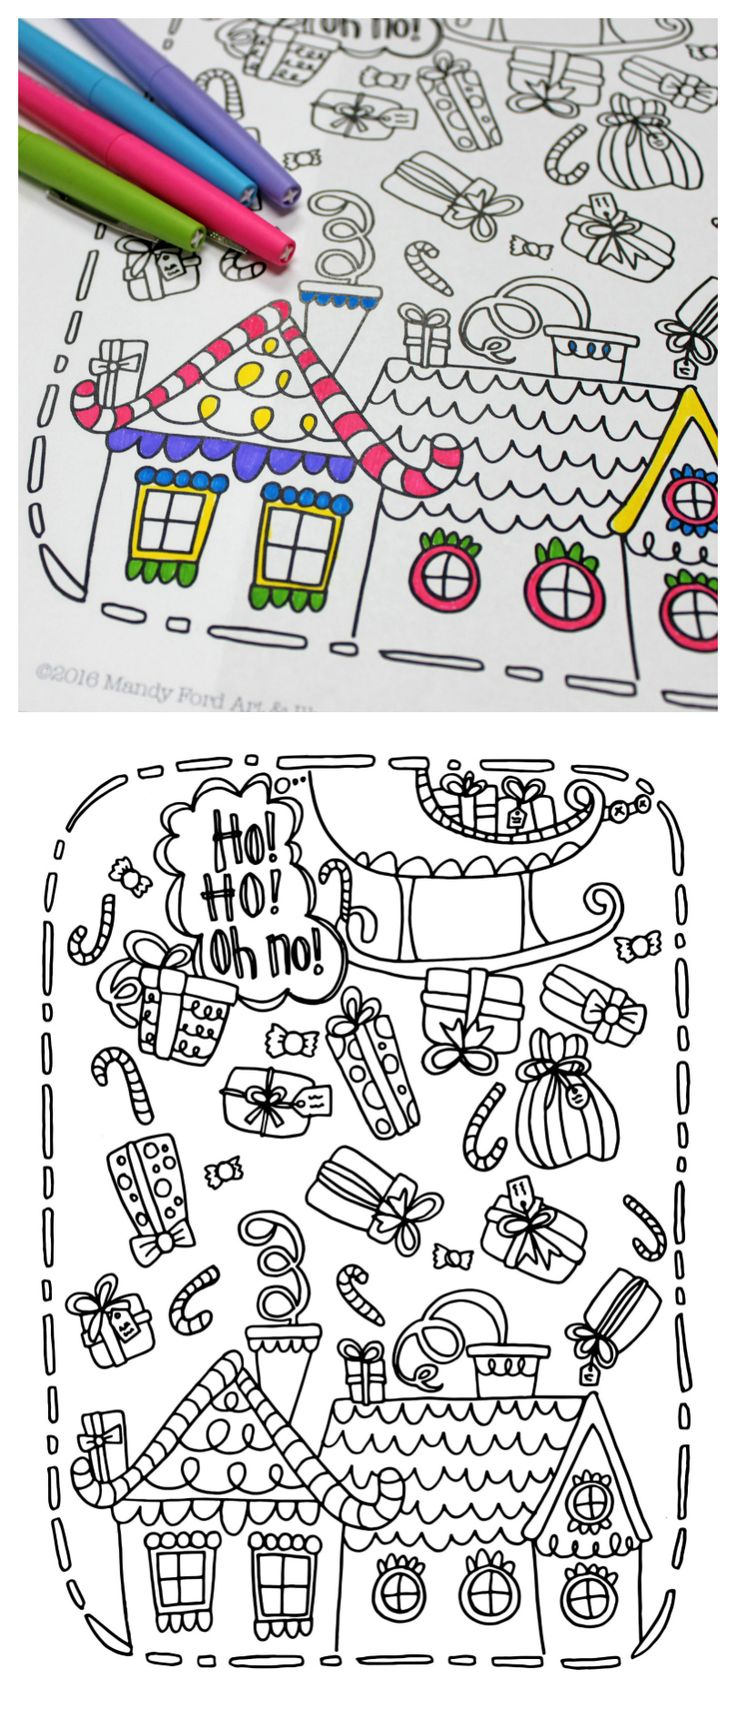 Christmas colouring pages online games - Ch Christmas Holly Colouring Pages Free Printable Christmas Coloring Page